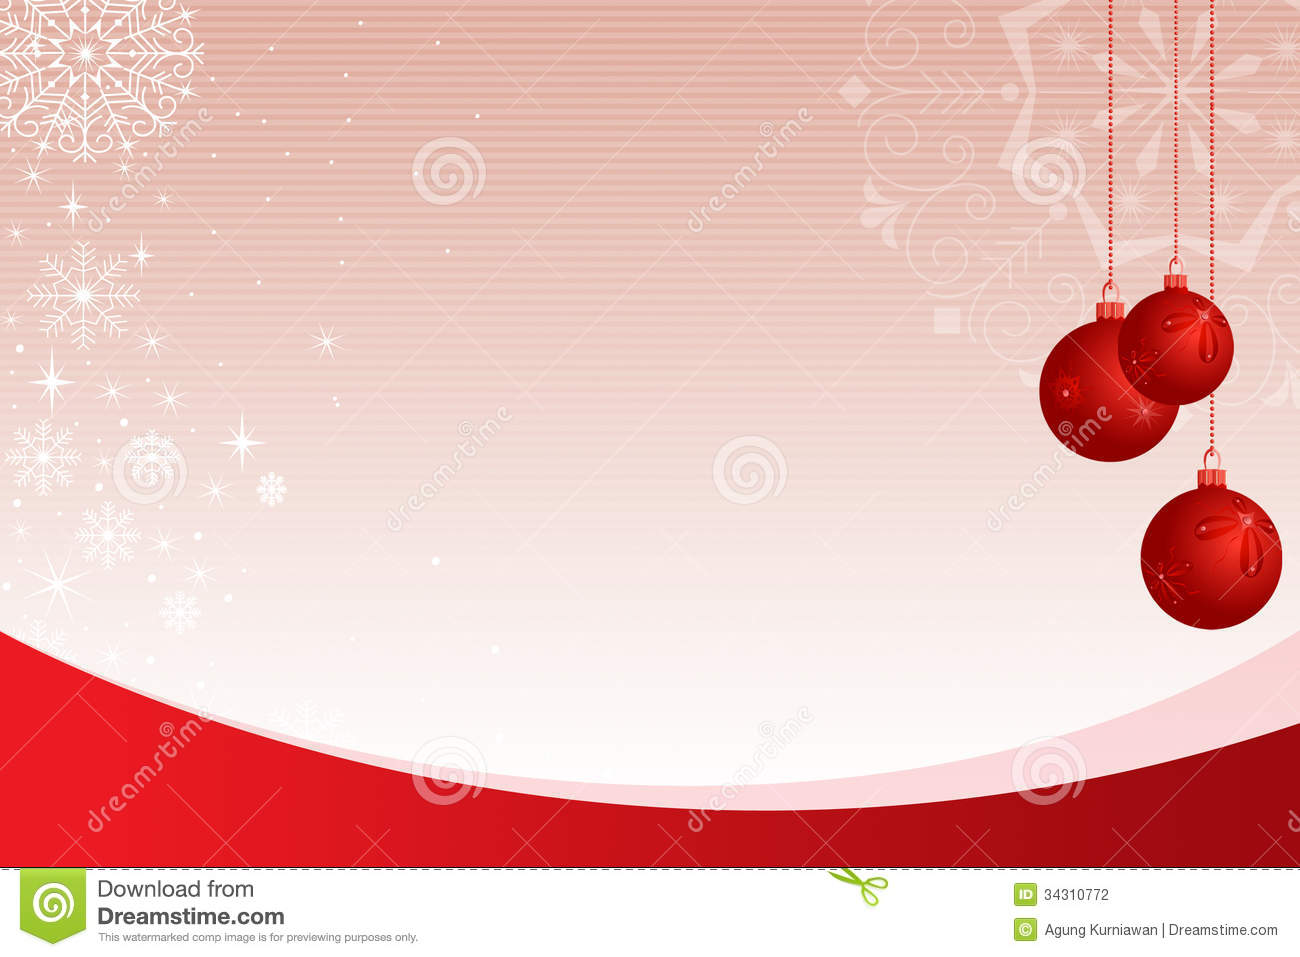 background images for birthday greeting cards ; ornamental-background-red-bubble-can-be-used-many-purpose-example-greeting-card-invitation-card-christmas-card-birthday-34310772